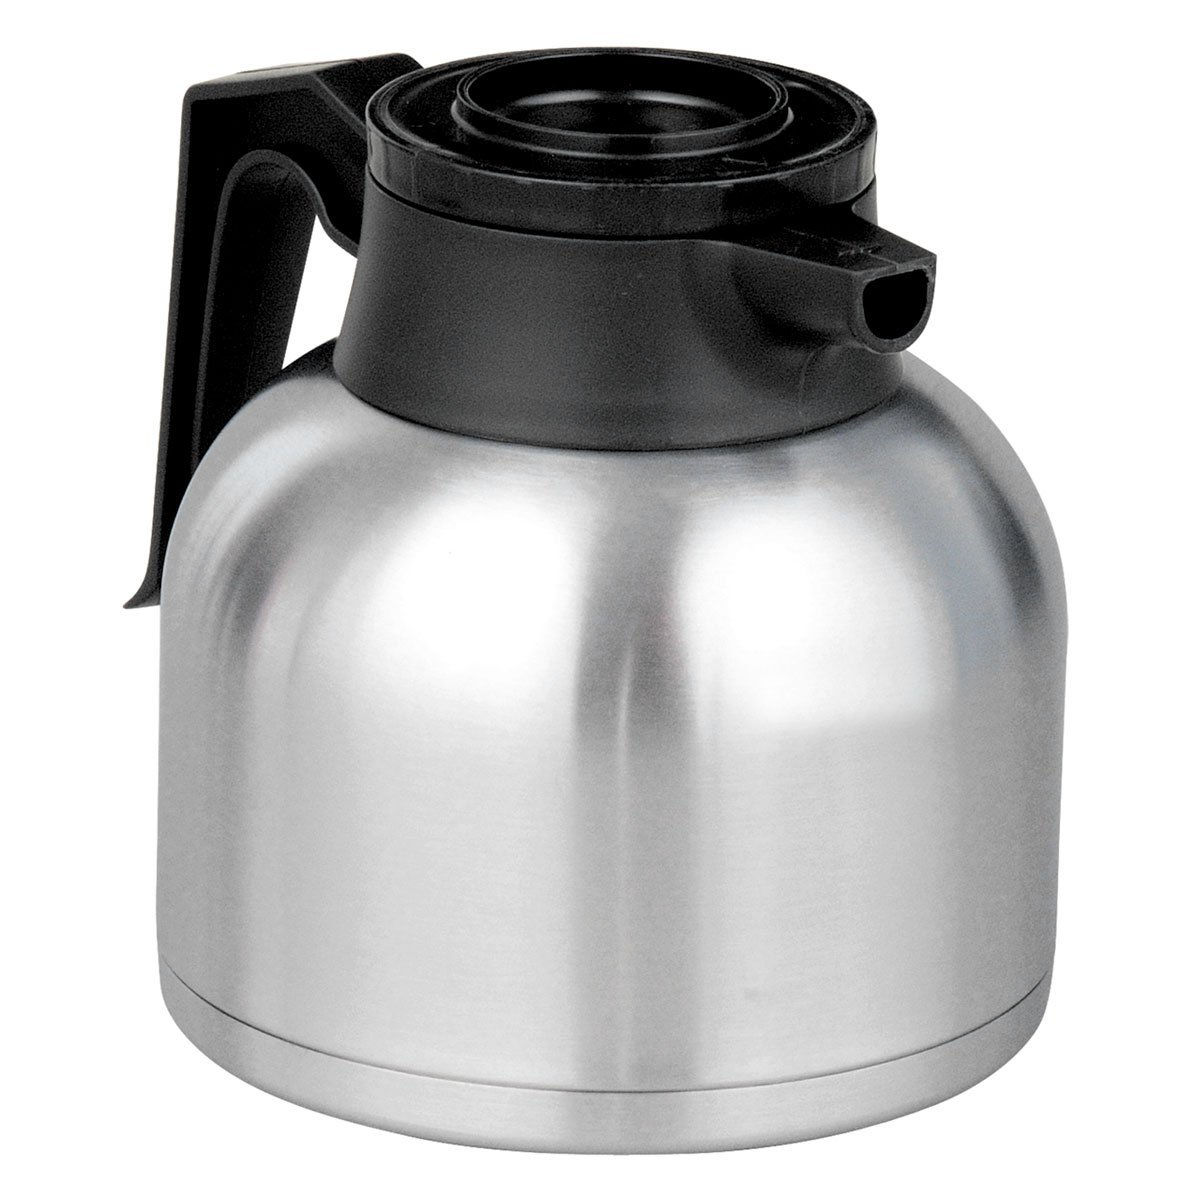 Bunn 40163.0000 Thermal Coffee Carafe - Black by BUNN